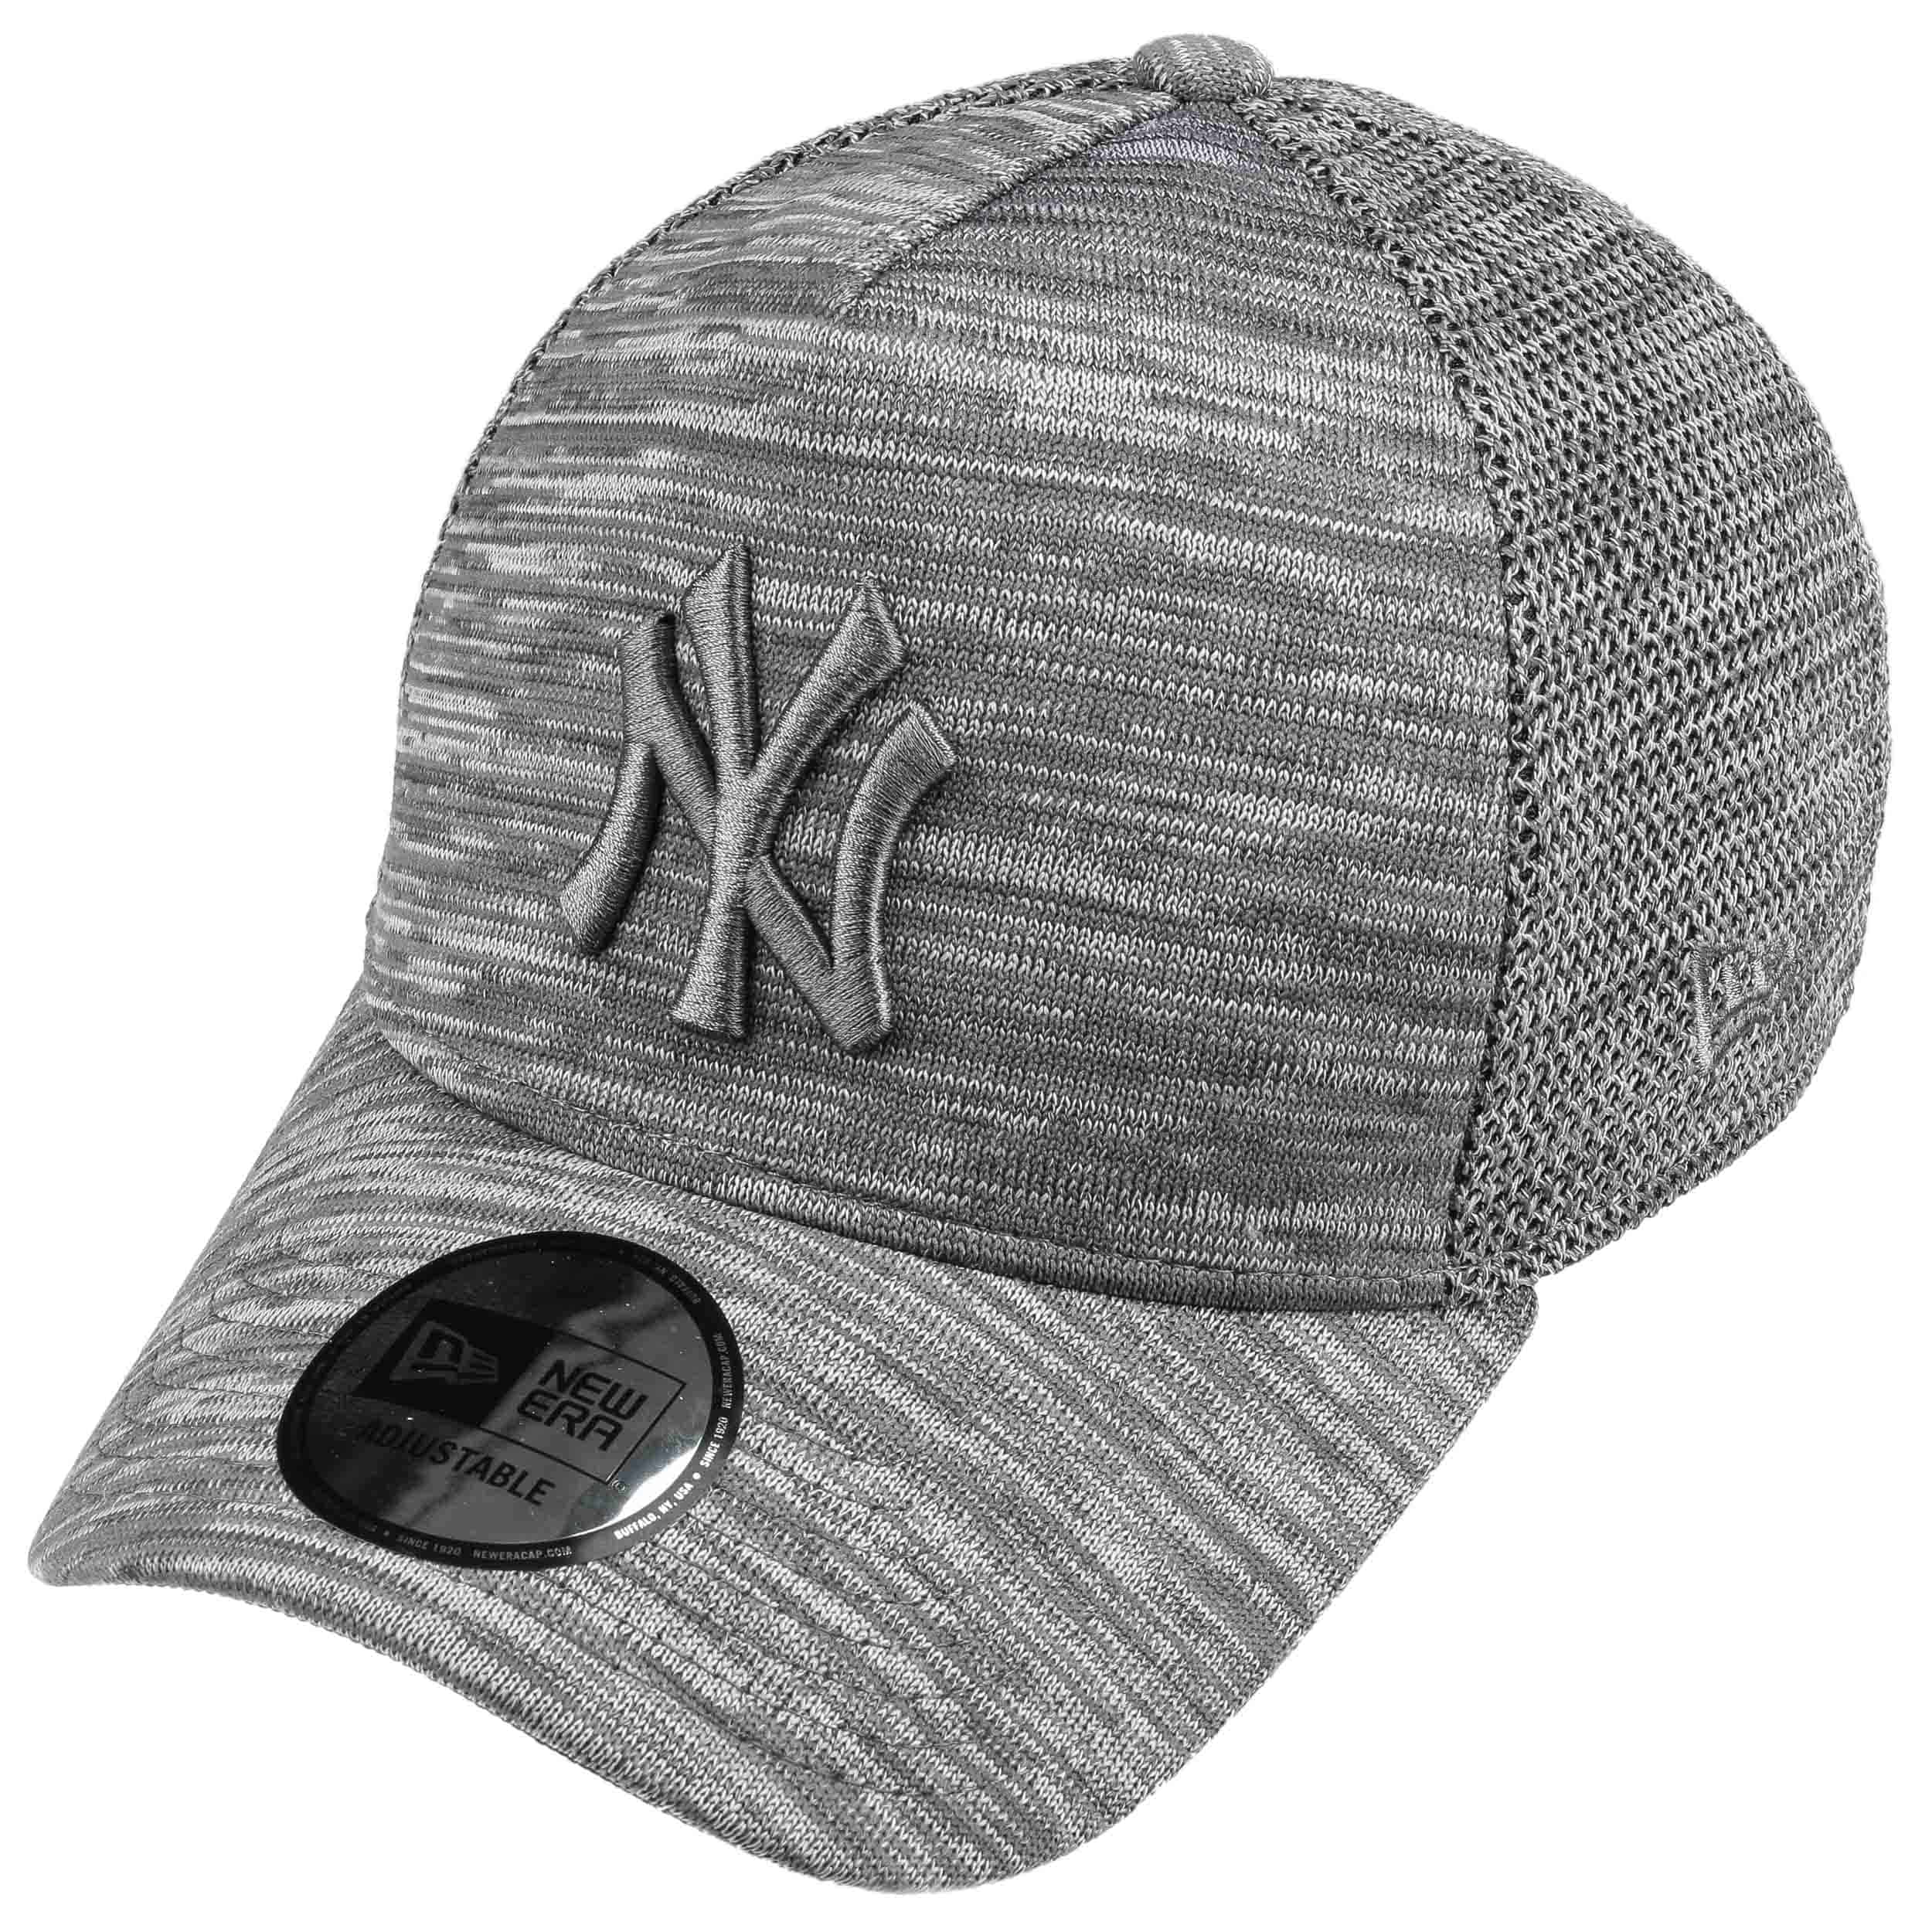 buy online 7d207 16ed3 Engineered Fit A-Frame Yankees Cap by New Era - grey 1 ...